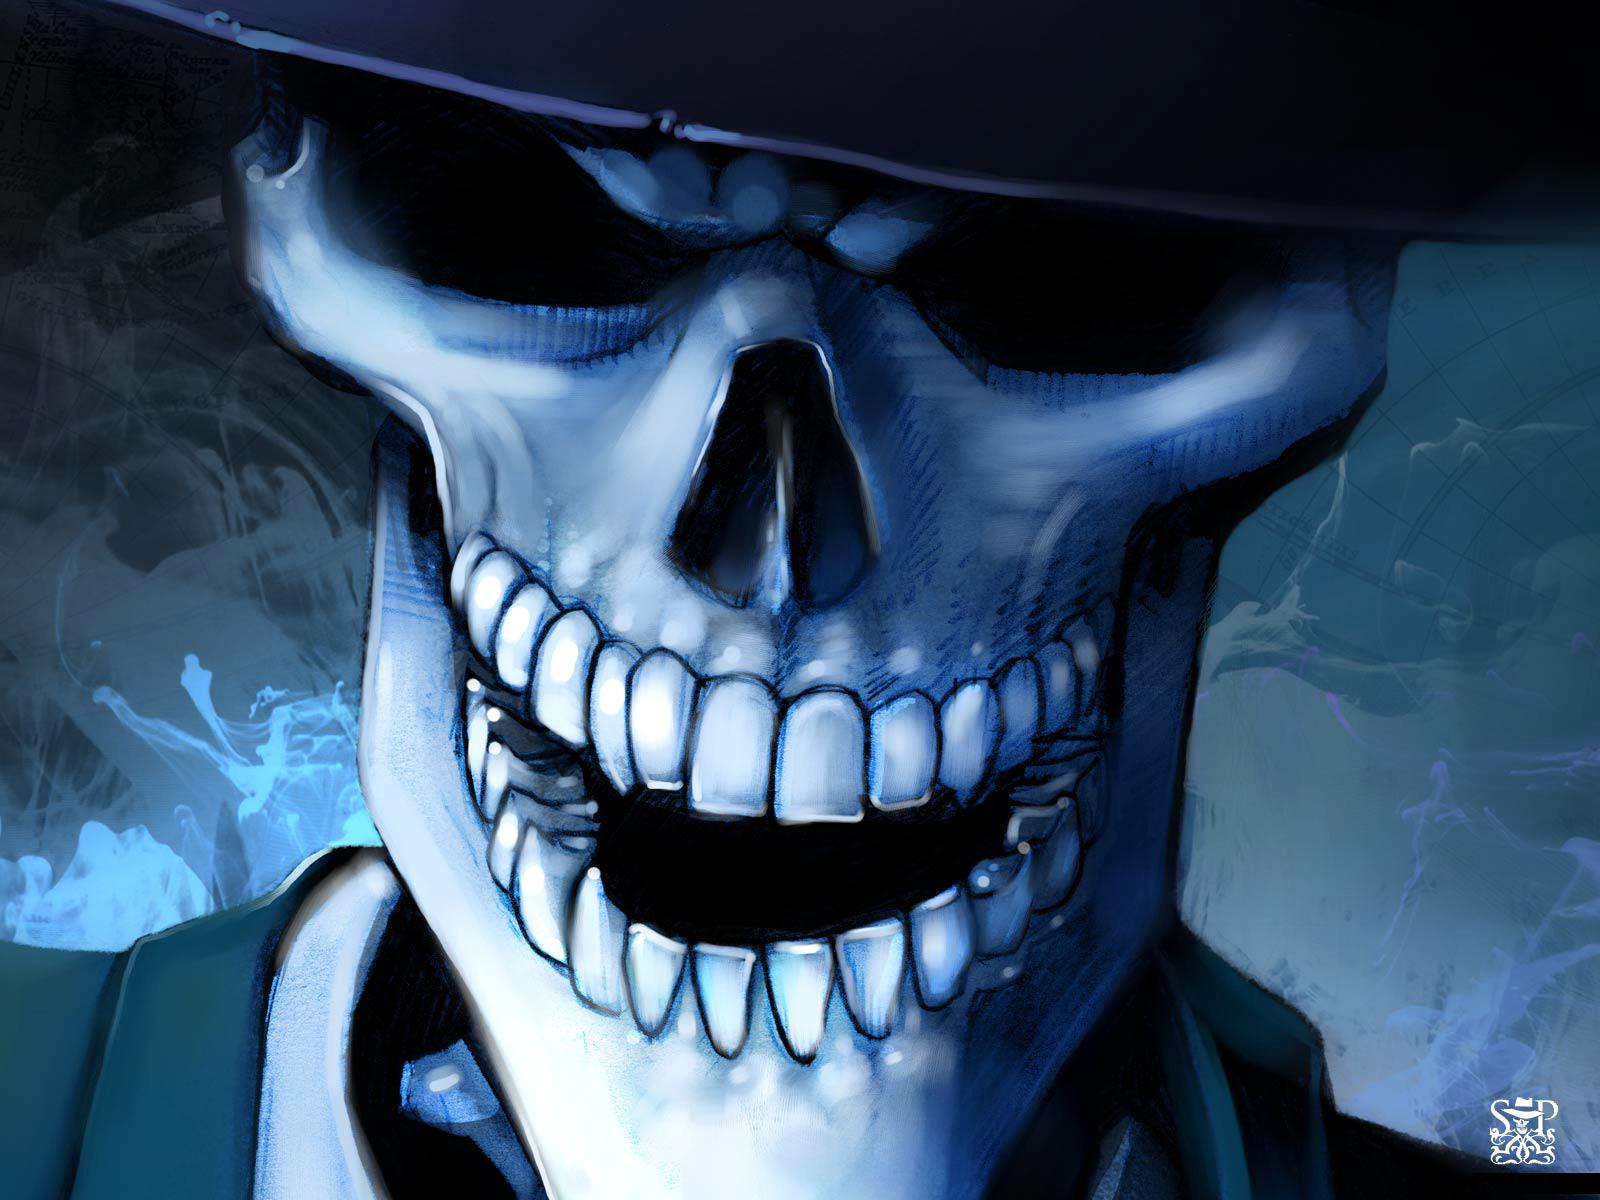 Free download hq skull hat horror wallpaper num 22 1600 x 1200 164